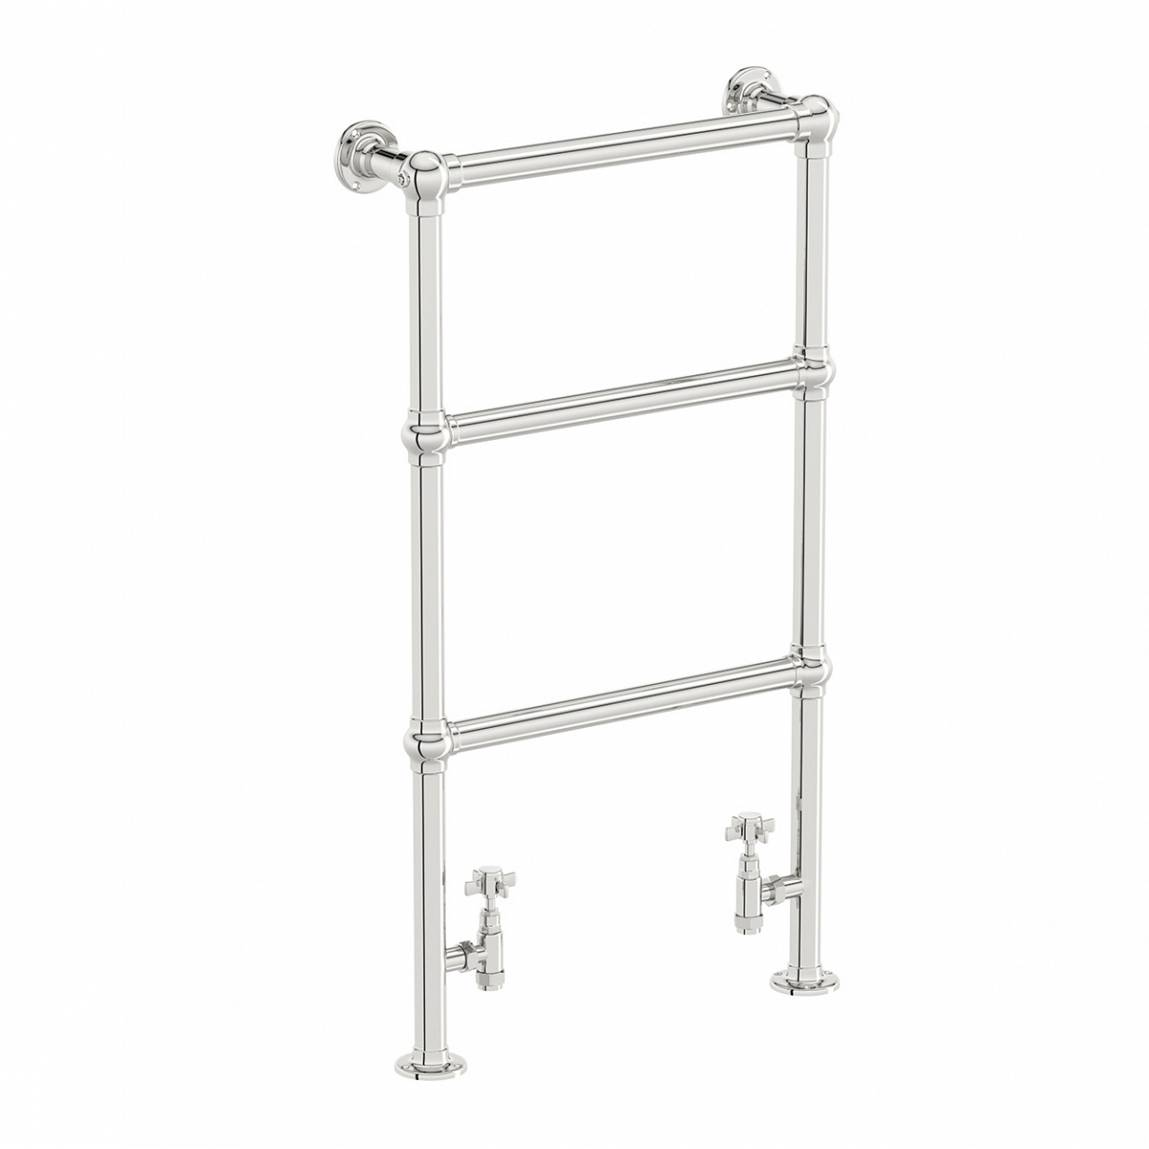 Image of Kensington Heated Towel Rail 914 x 535